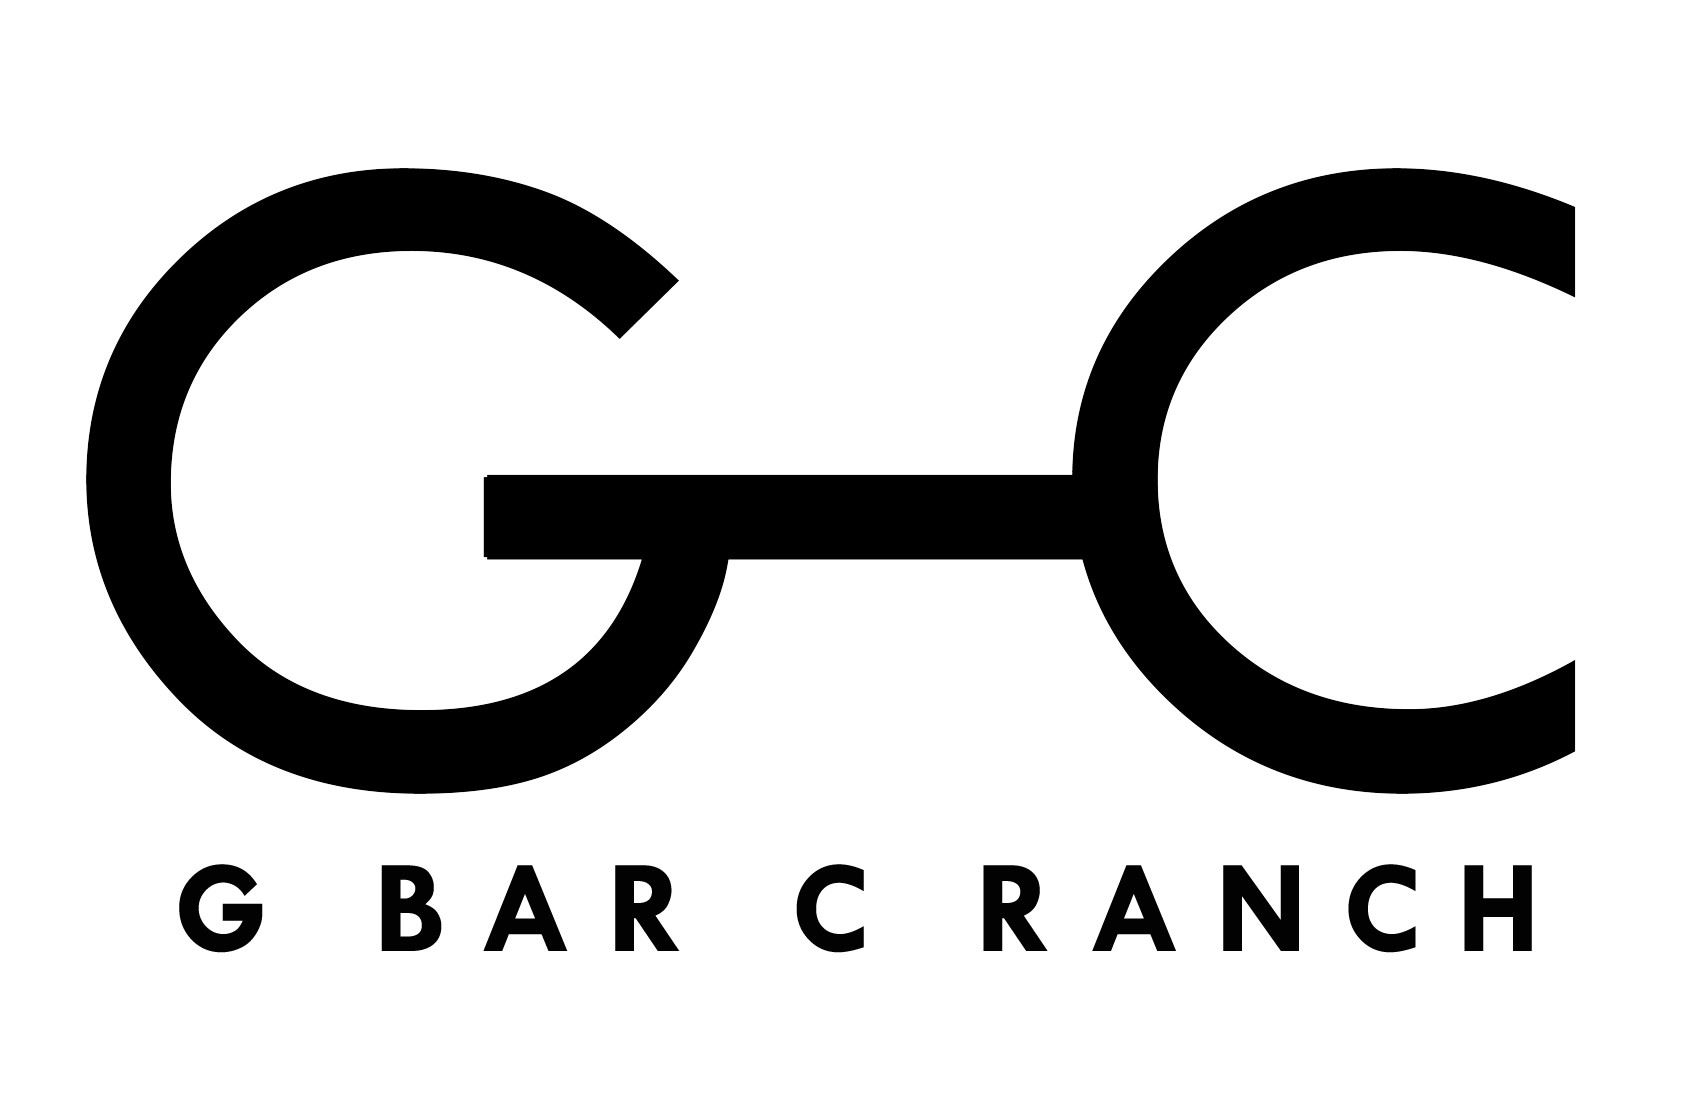 G Bar C Ranch